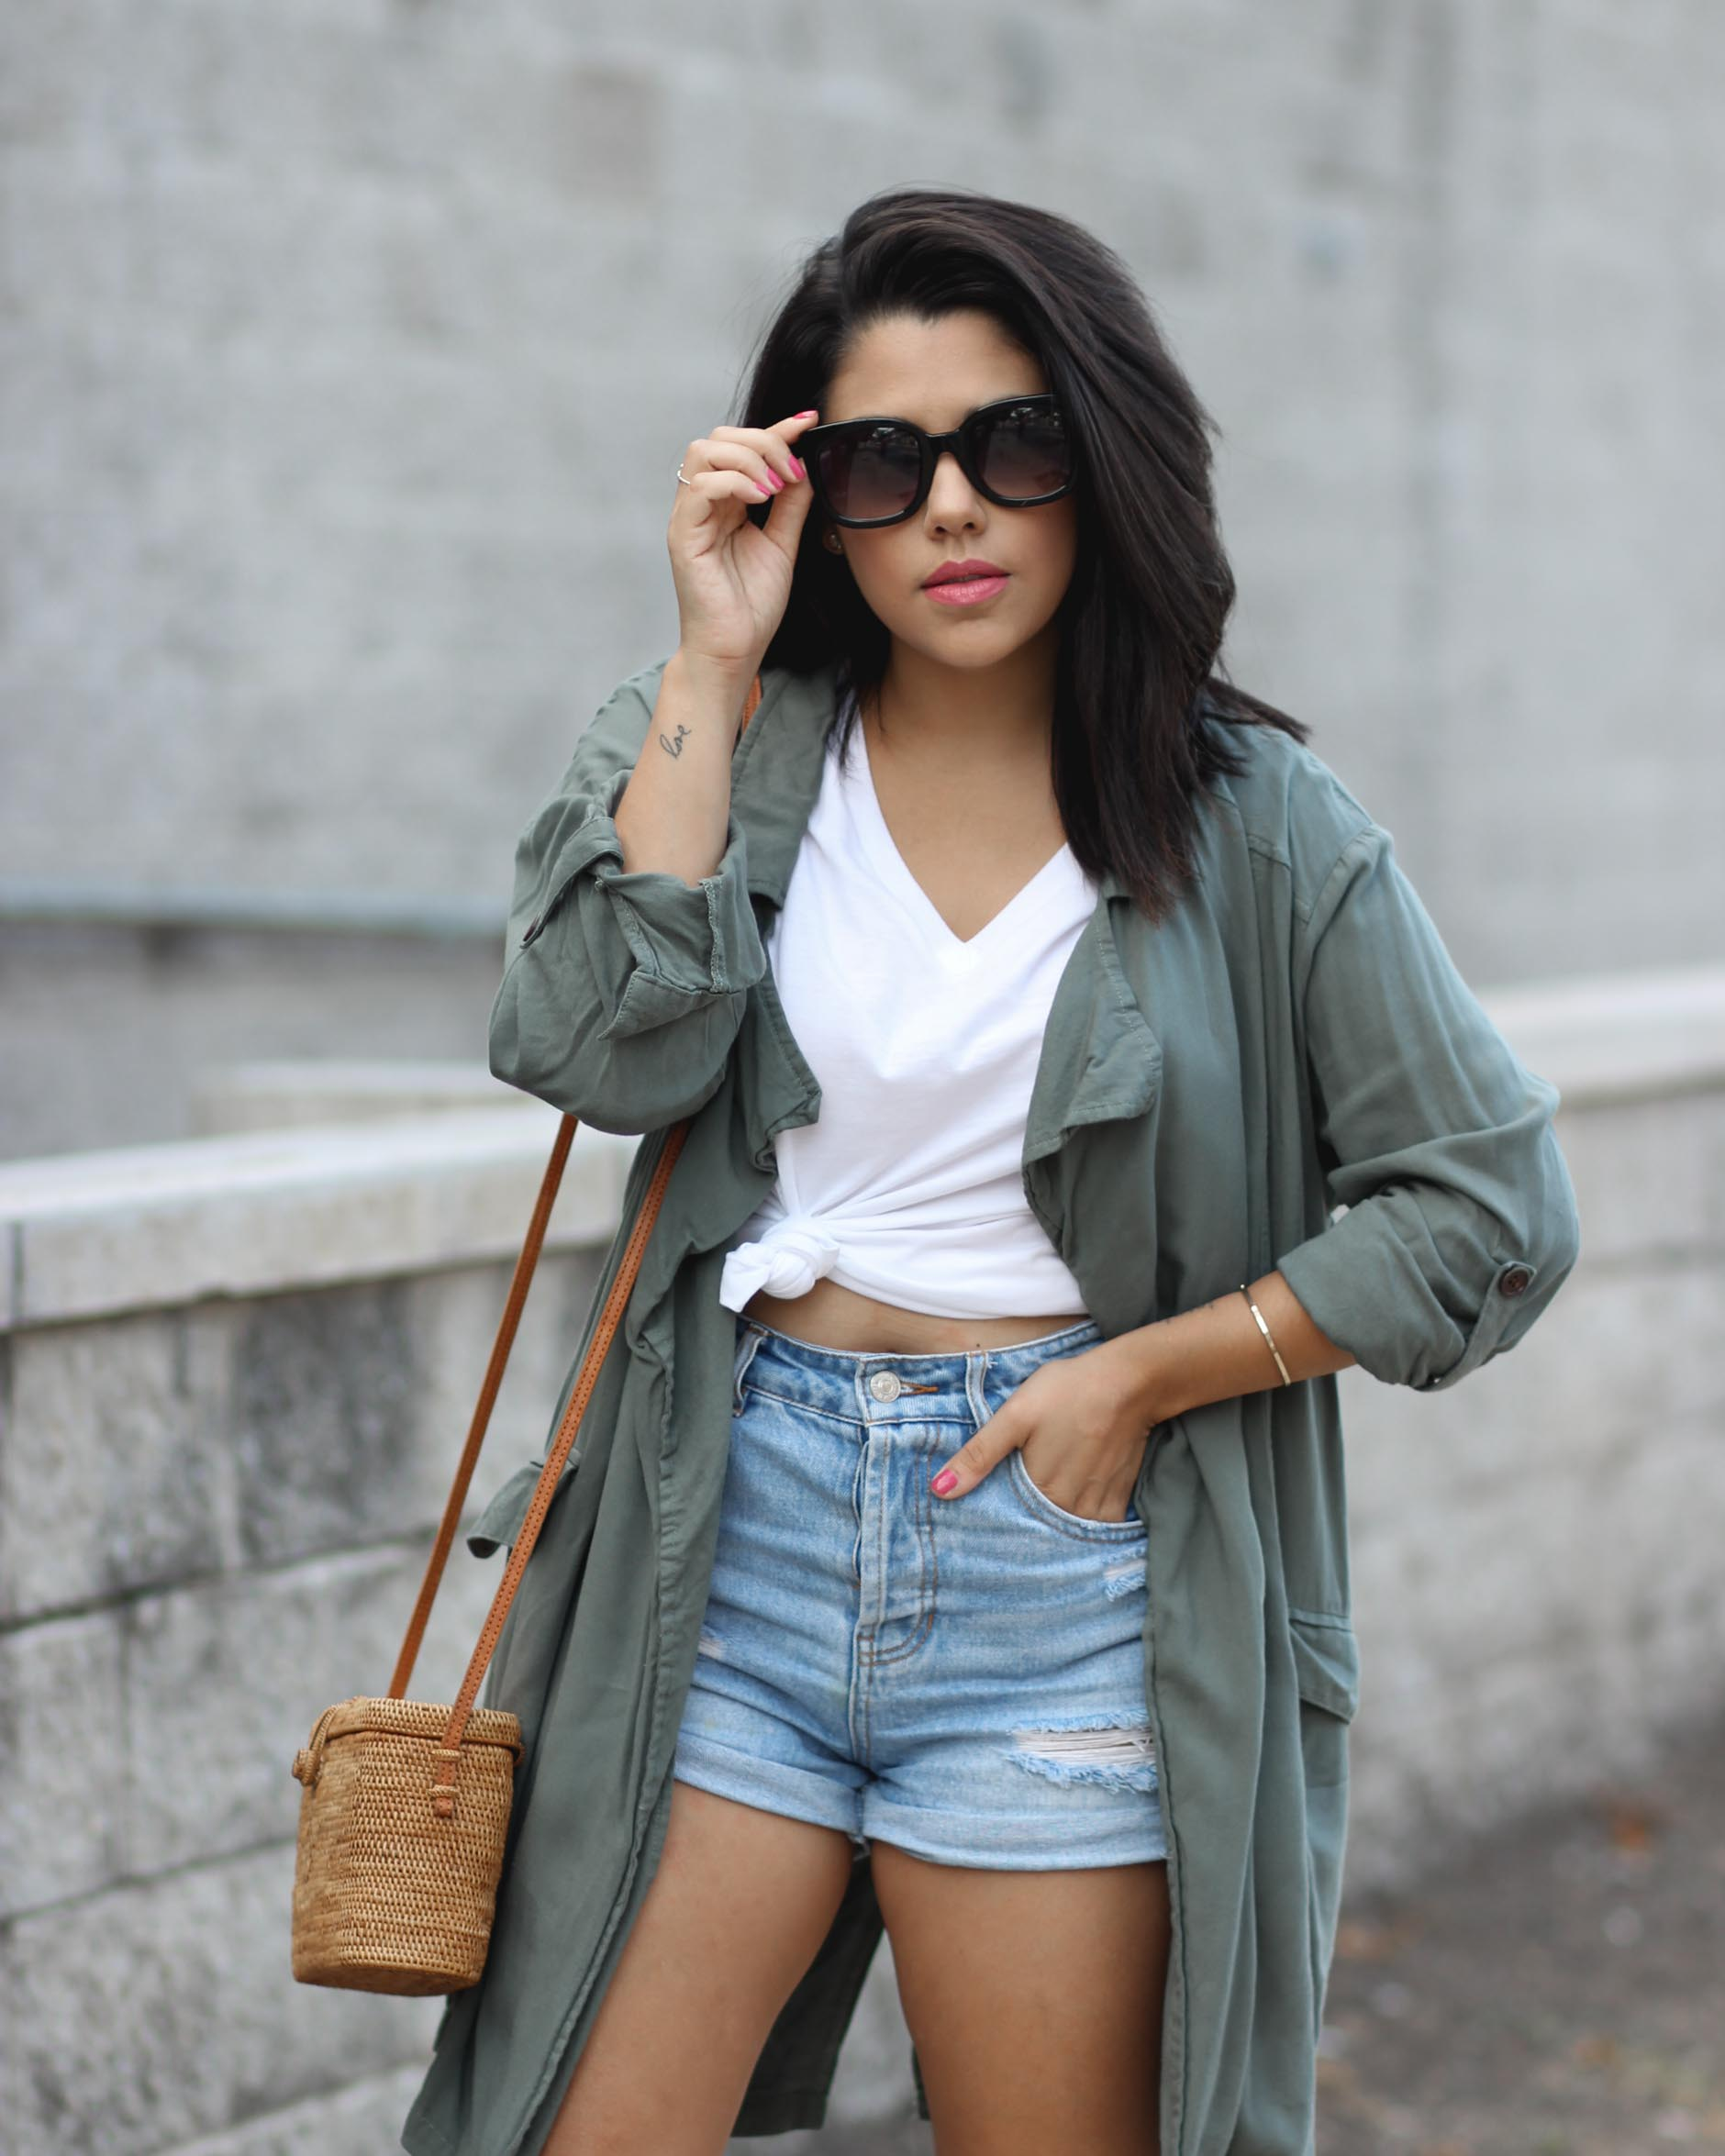 lifestyle blogger naty michele wearing a knotted tee with a trench coat and denim shorts holding her sunglasses